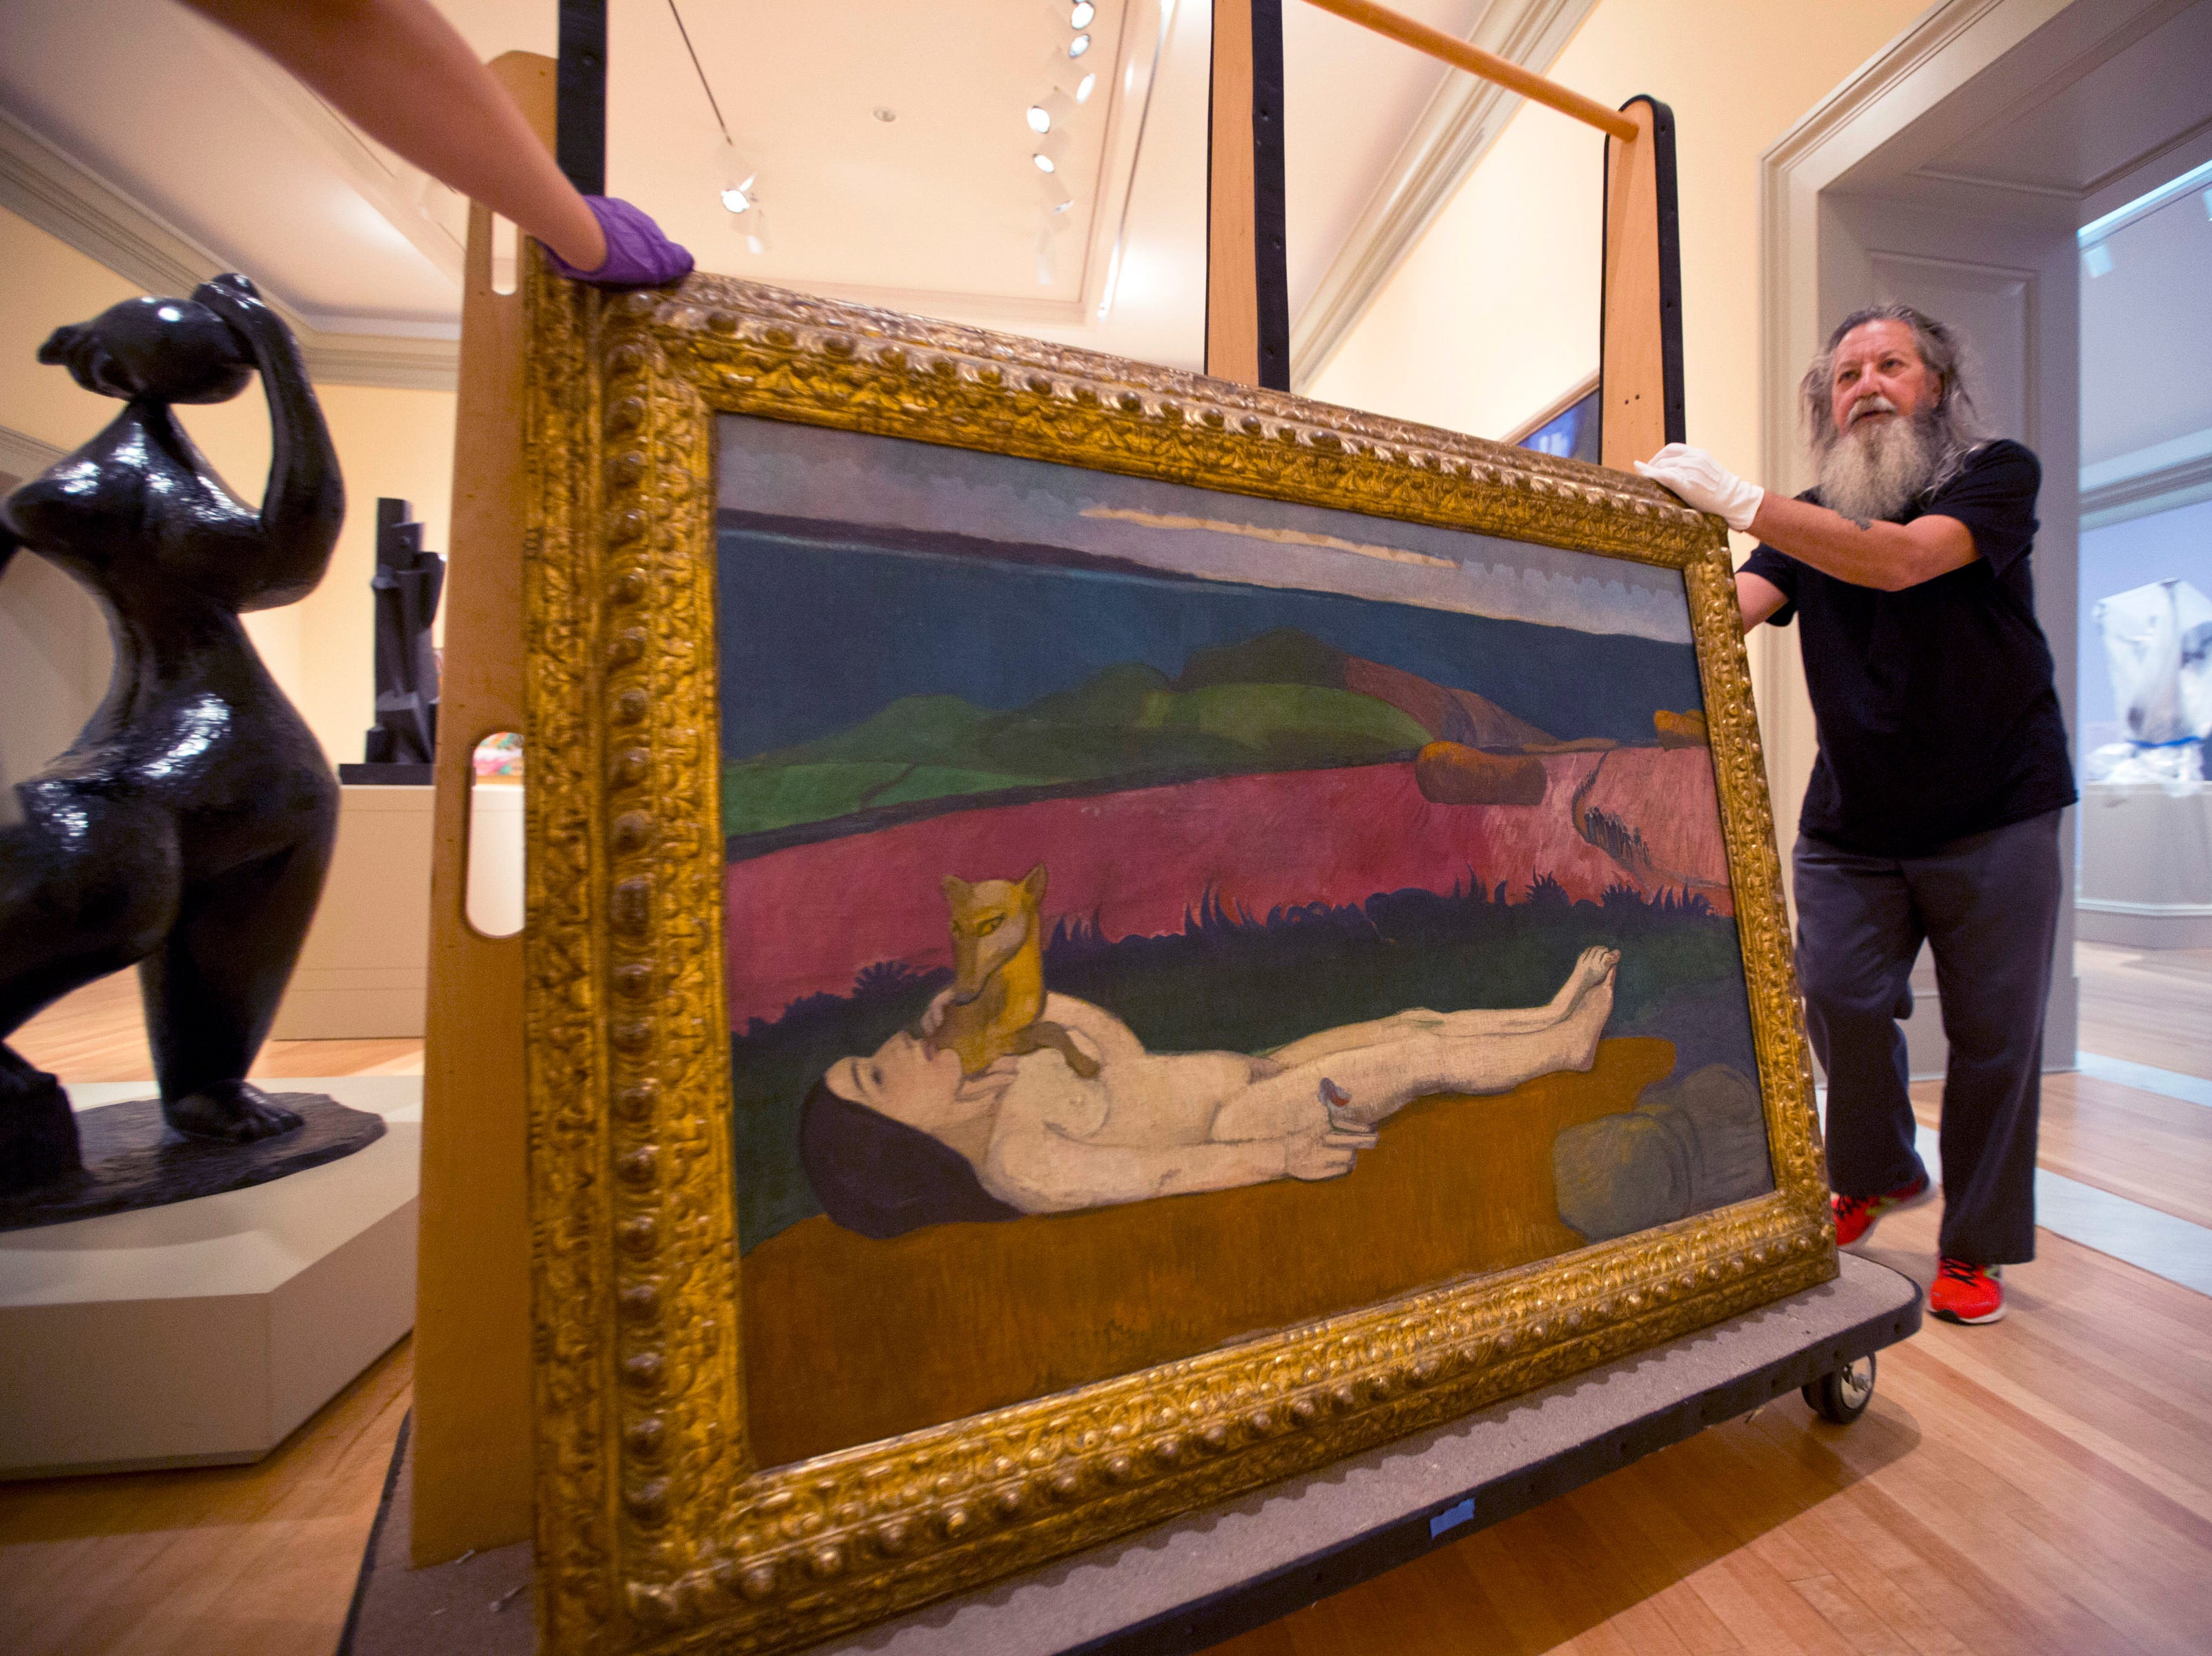 "Alisa Reynolds, left, not seen, and Richard Hovorka, right, move the painting "" The Loss of Virginity"" by Paul Gauguin at the Chrysler Museum of Art in Norfolk, Va., on Tuesday, Sept. 11, 2018. As category 4 Hurricane Florence approaches, staff members pull priceless paintings off the walls near windows and skylights on. Later on, the entrance to the museum will be sandbagged."